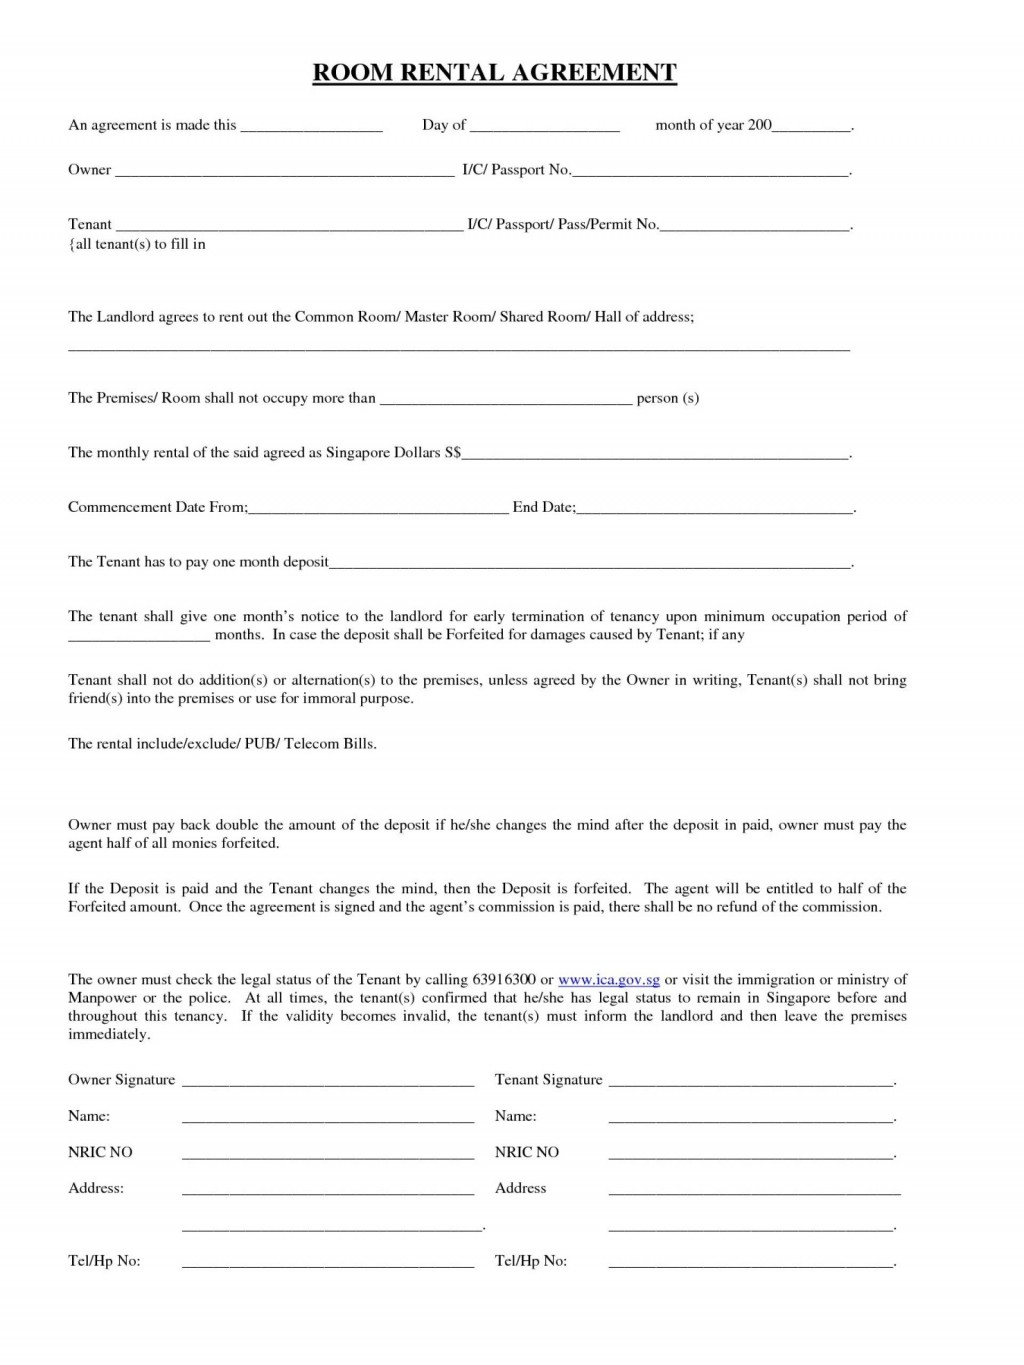 008 Excellent Room Rental Agreement Template Word Doc Malaysia Concept Large